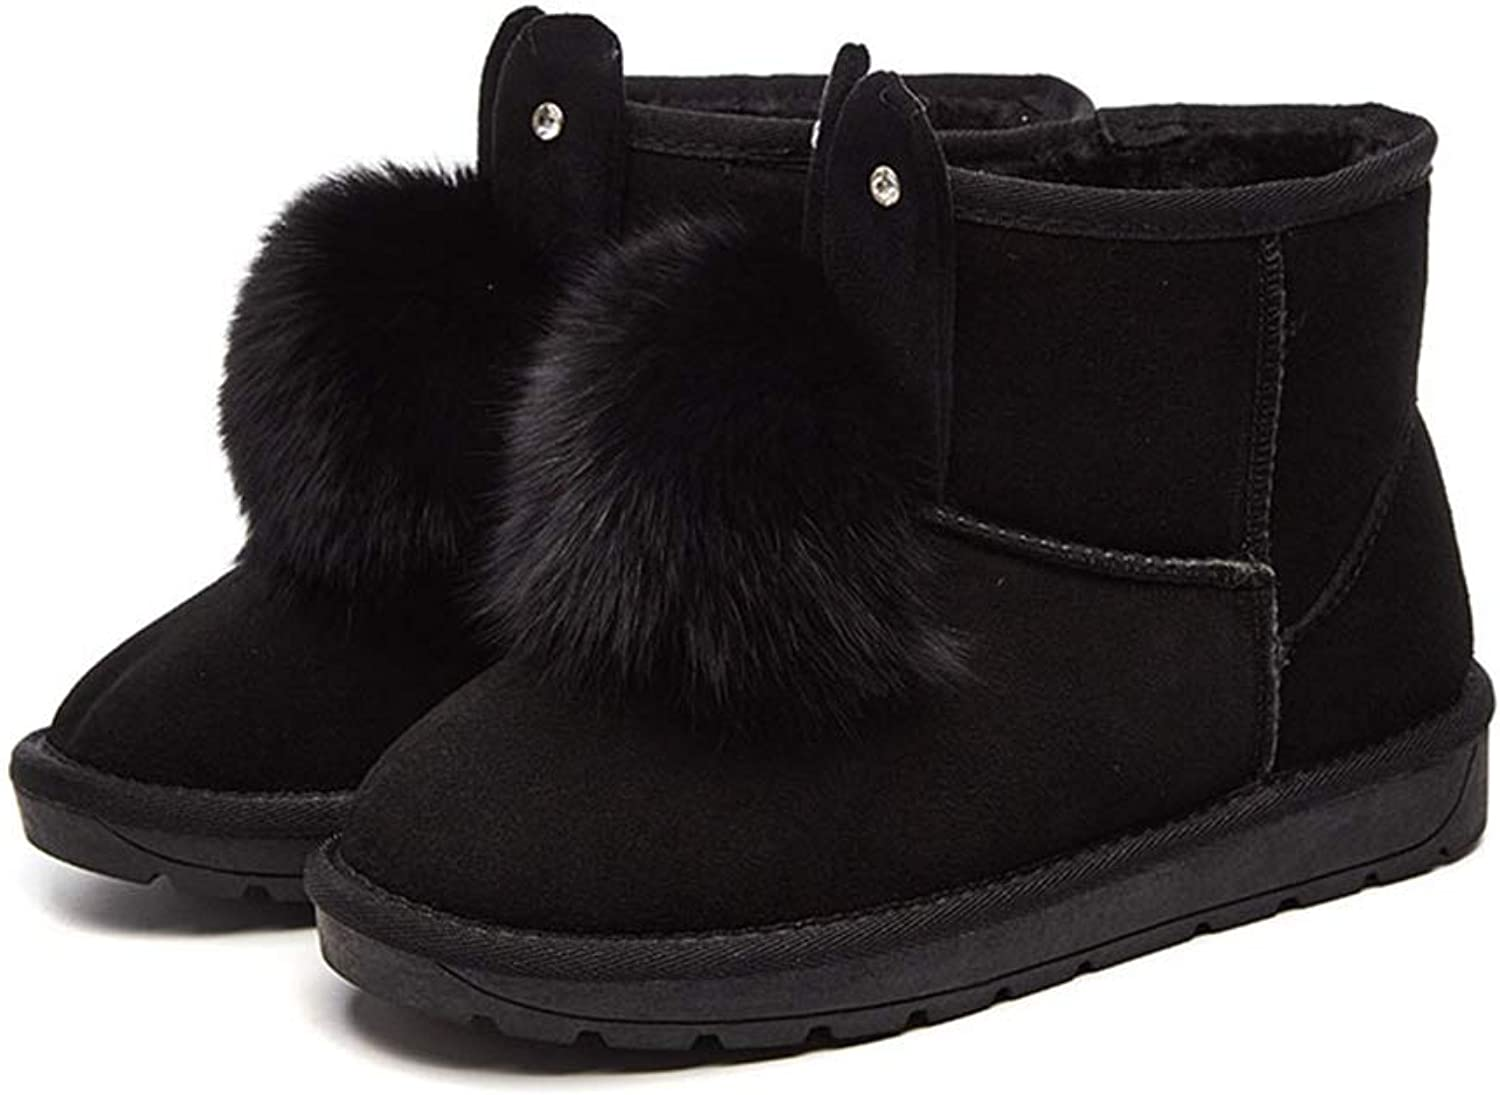 Women's Winter Warm Snow Bootsfemale Rabbit Ears Boots Warm Non-Slip Winter Cotton shoes Pom-Poms Ankle Boots